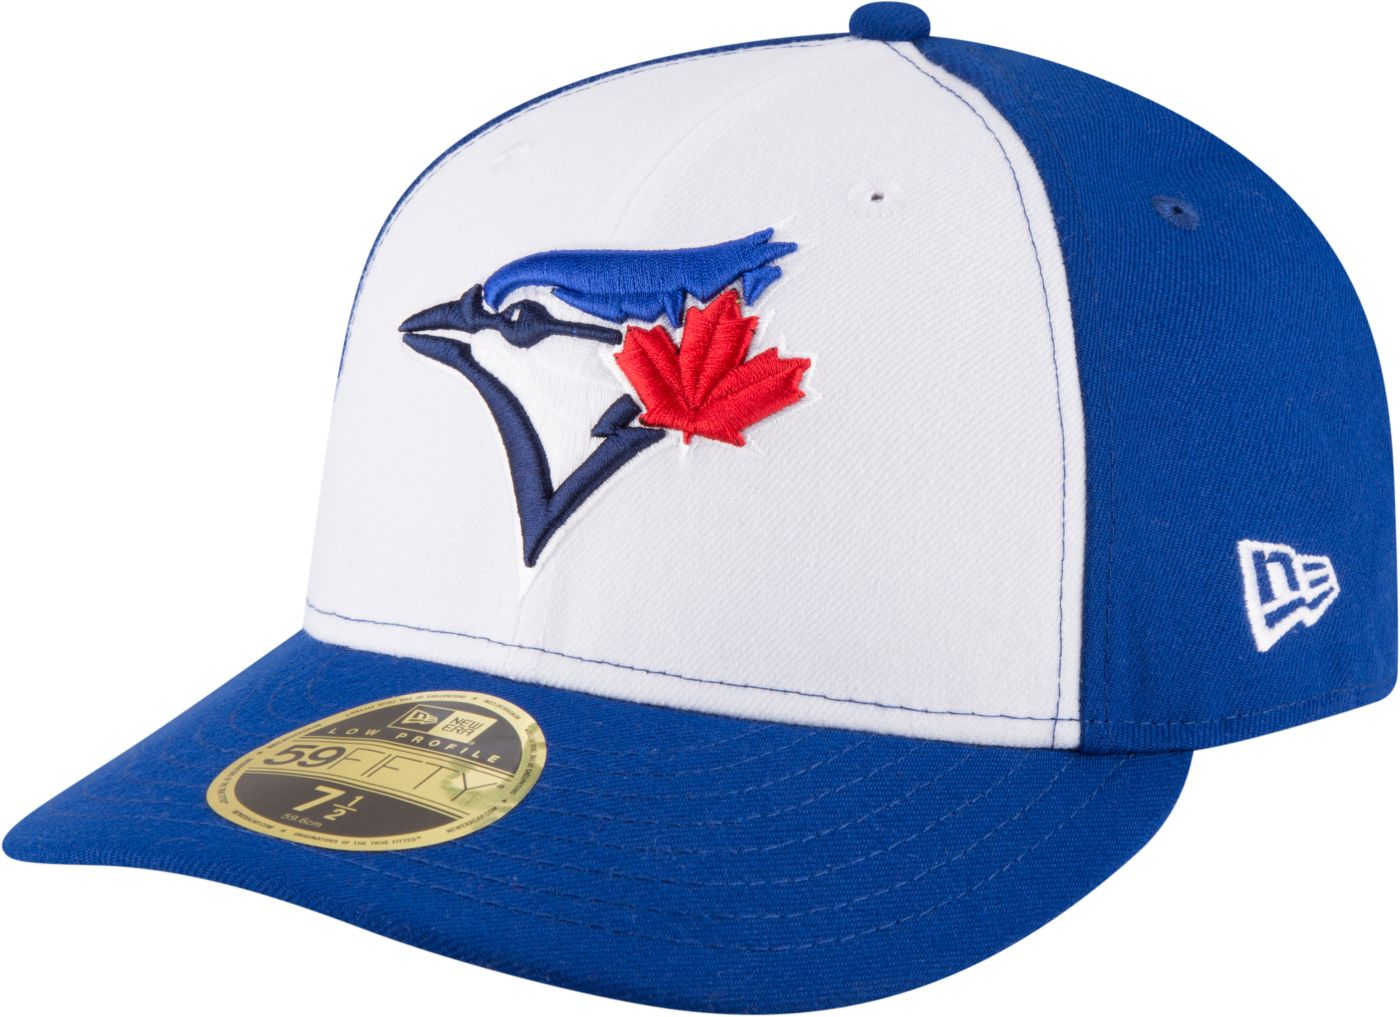 New Era Men's Toronto Blue Jays 59Fifty Alternate White/Royal Low Crown Fitted Hat